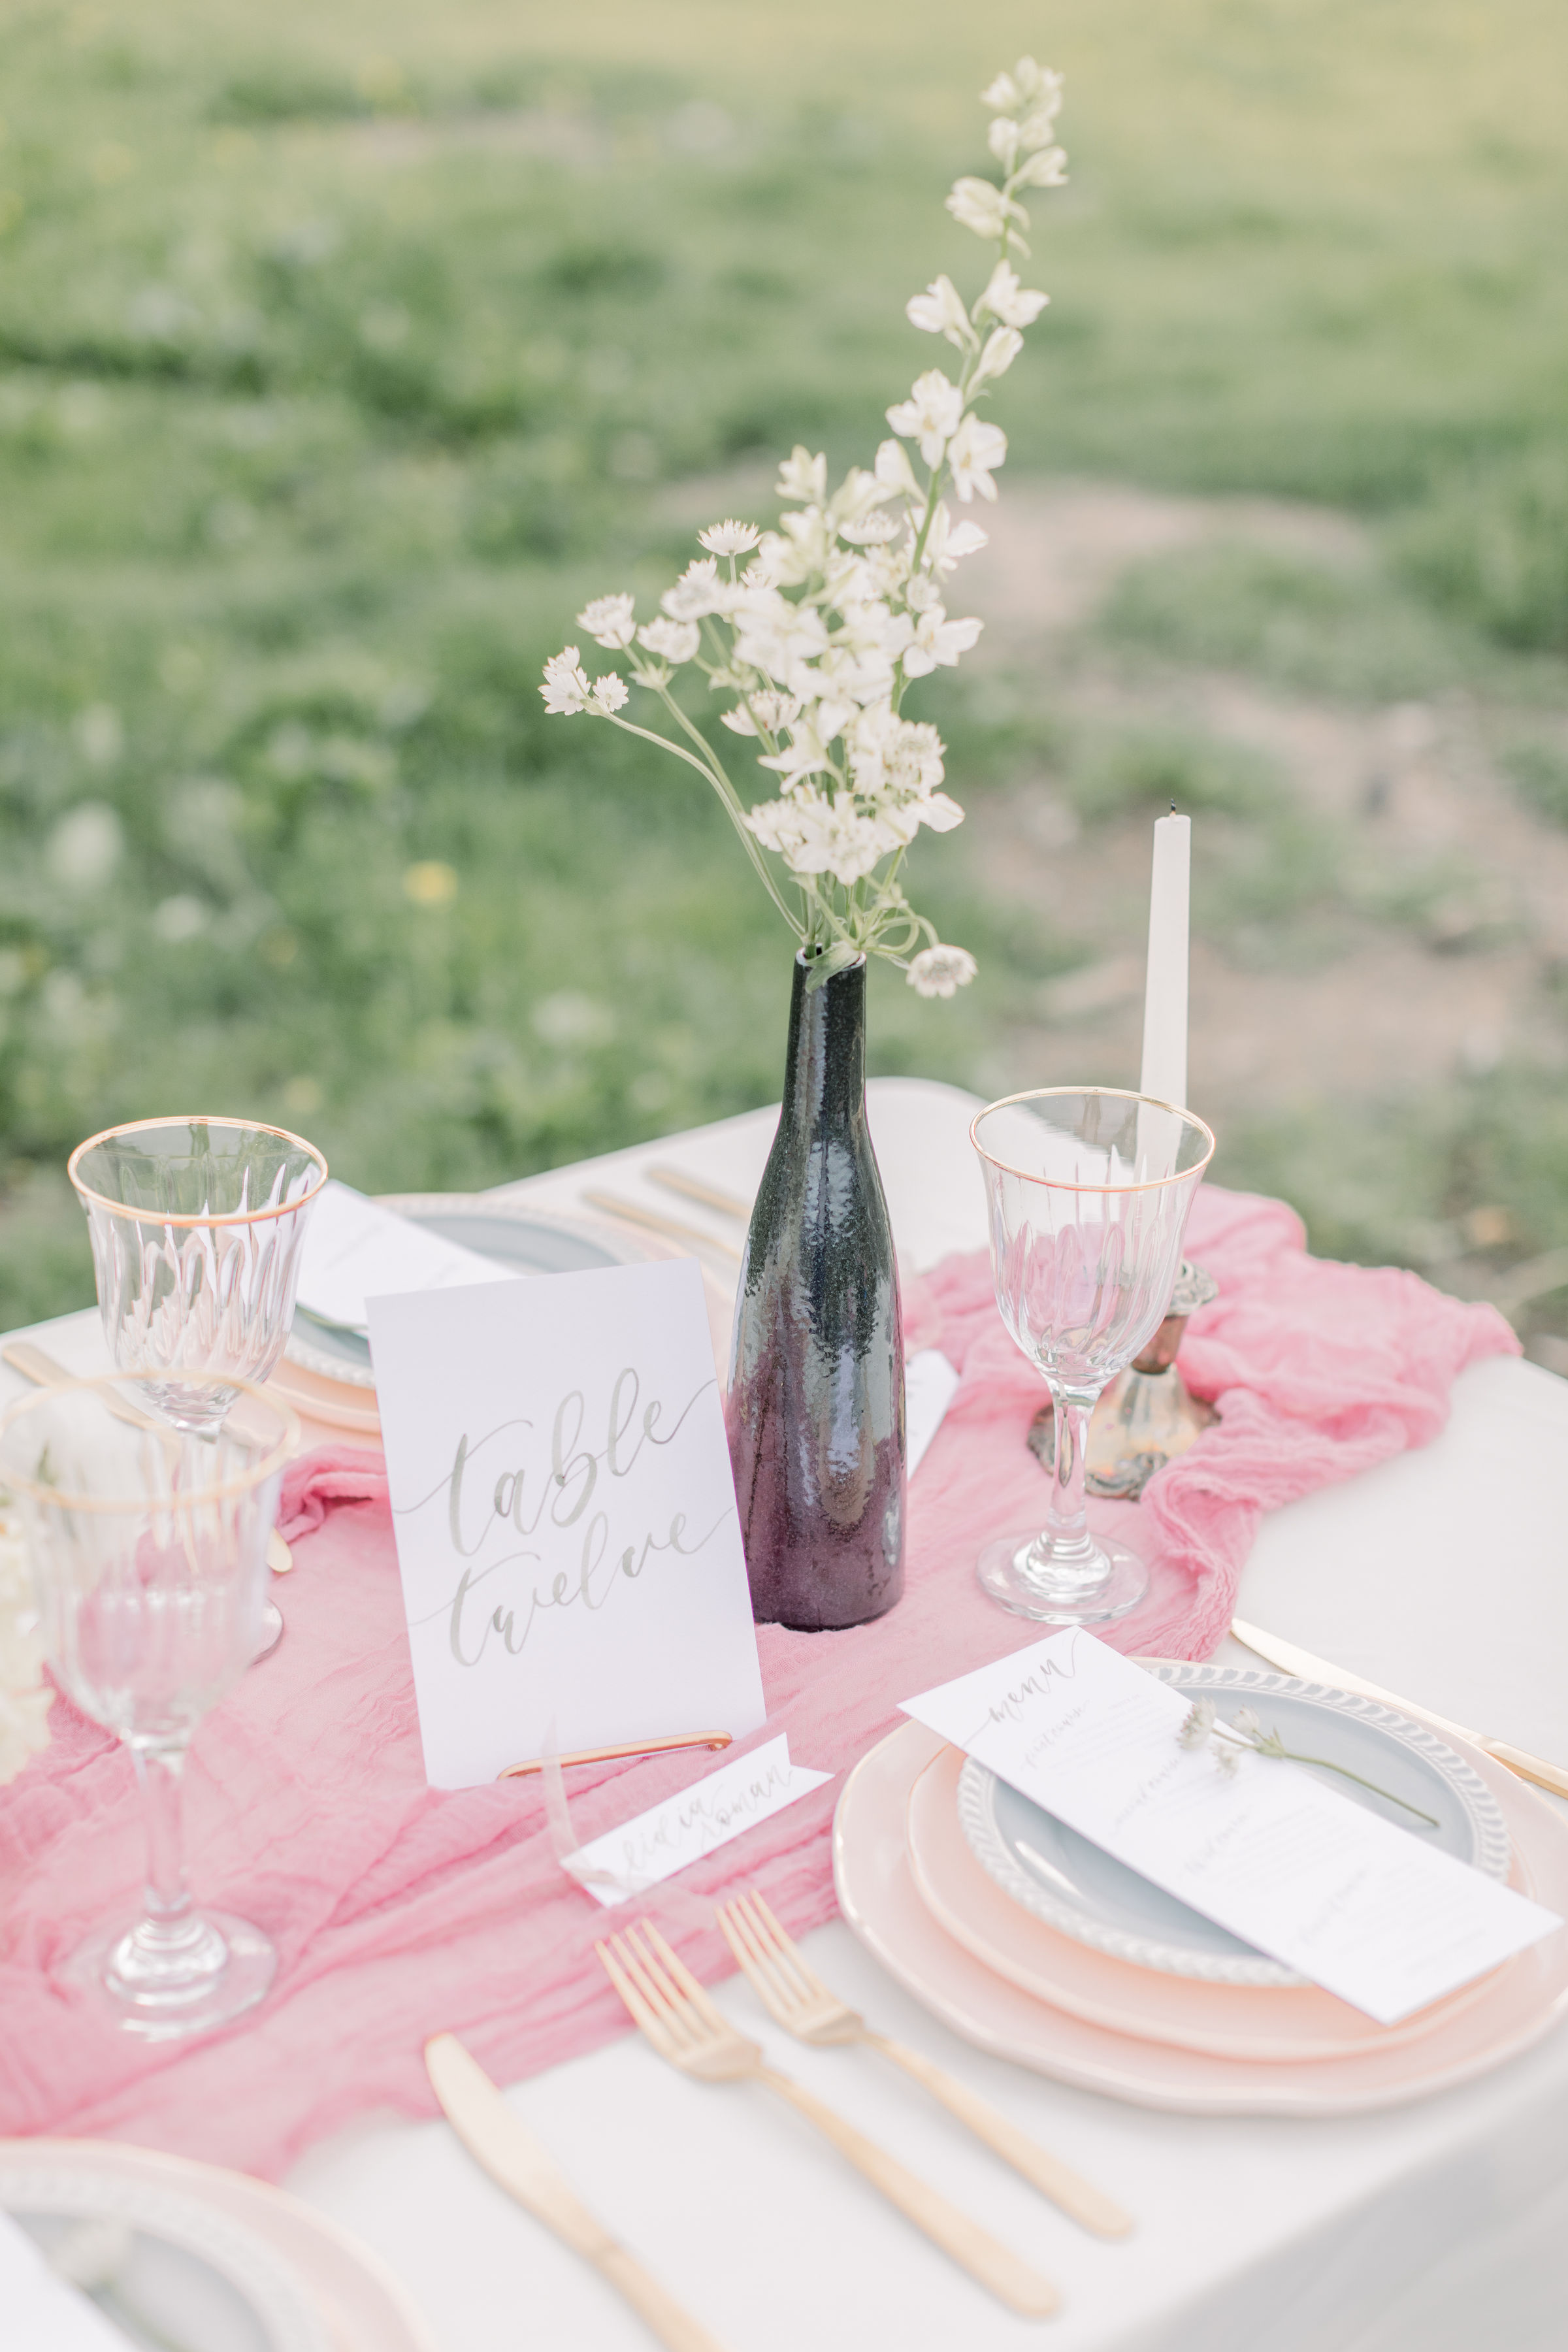 StephanieWeberPhotography-Green Wedding Reception Tablescape, Sam Allen Creates Table Number Cards